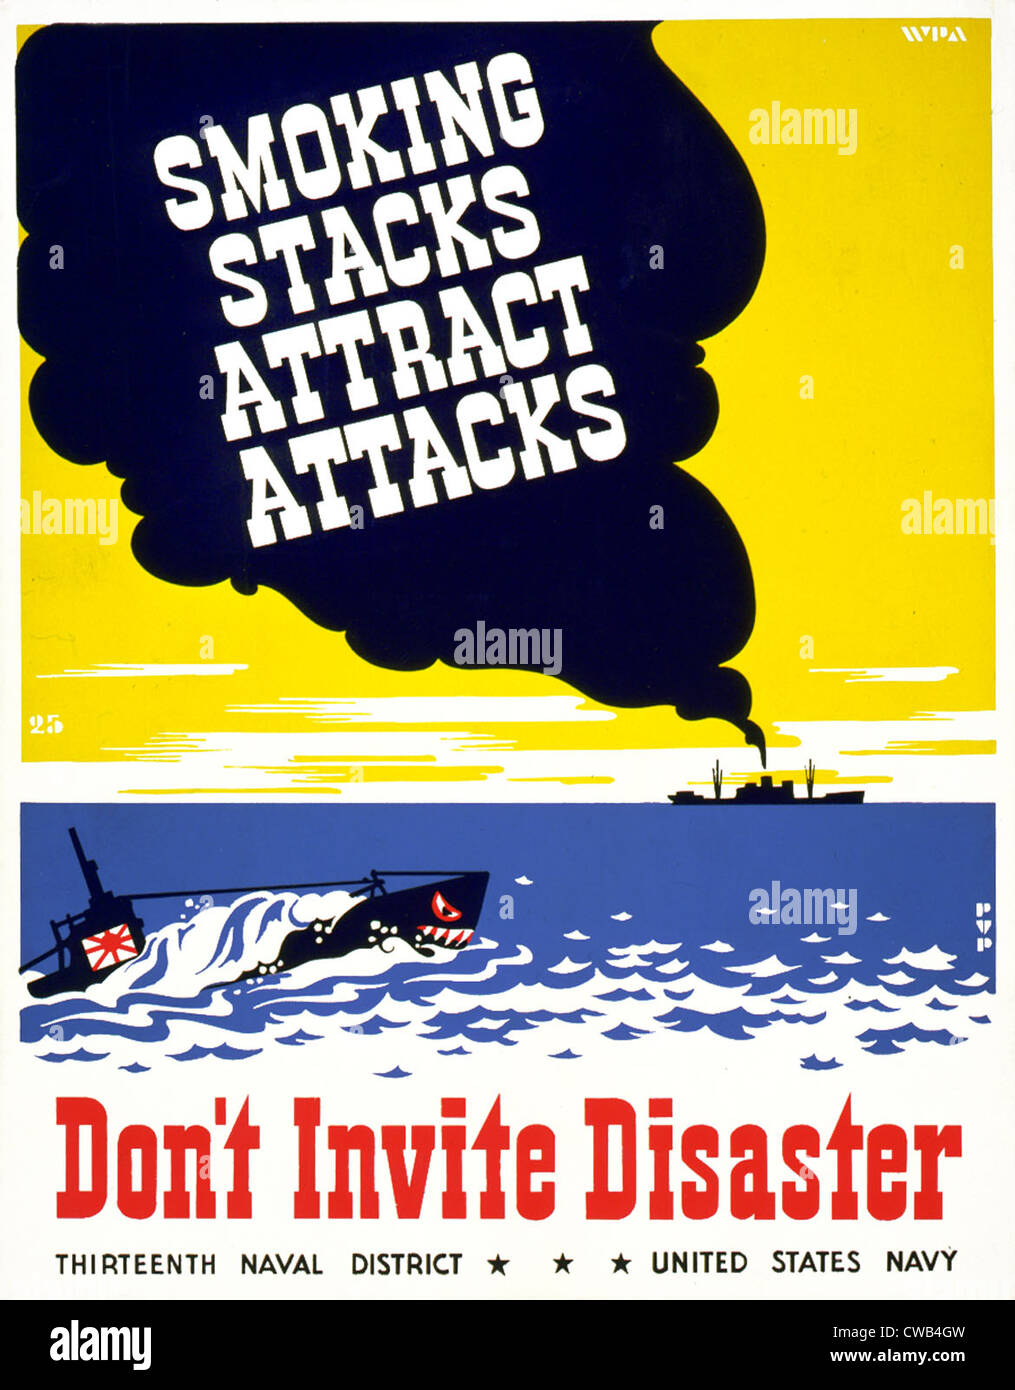 La Seconde Guerre mondiale, pour l'affiche de la treizième district naval, United States Navy, montrant Photo Stock